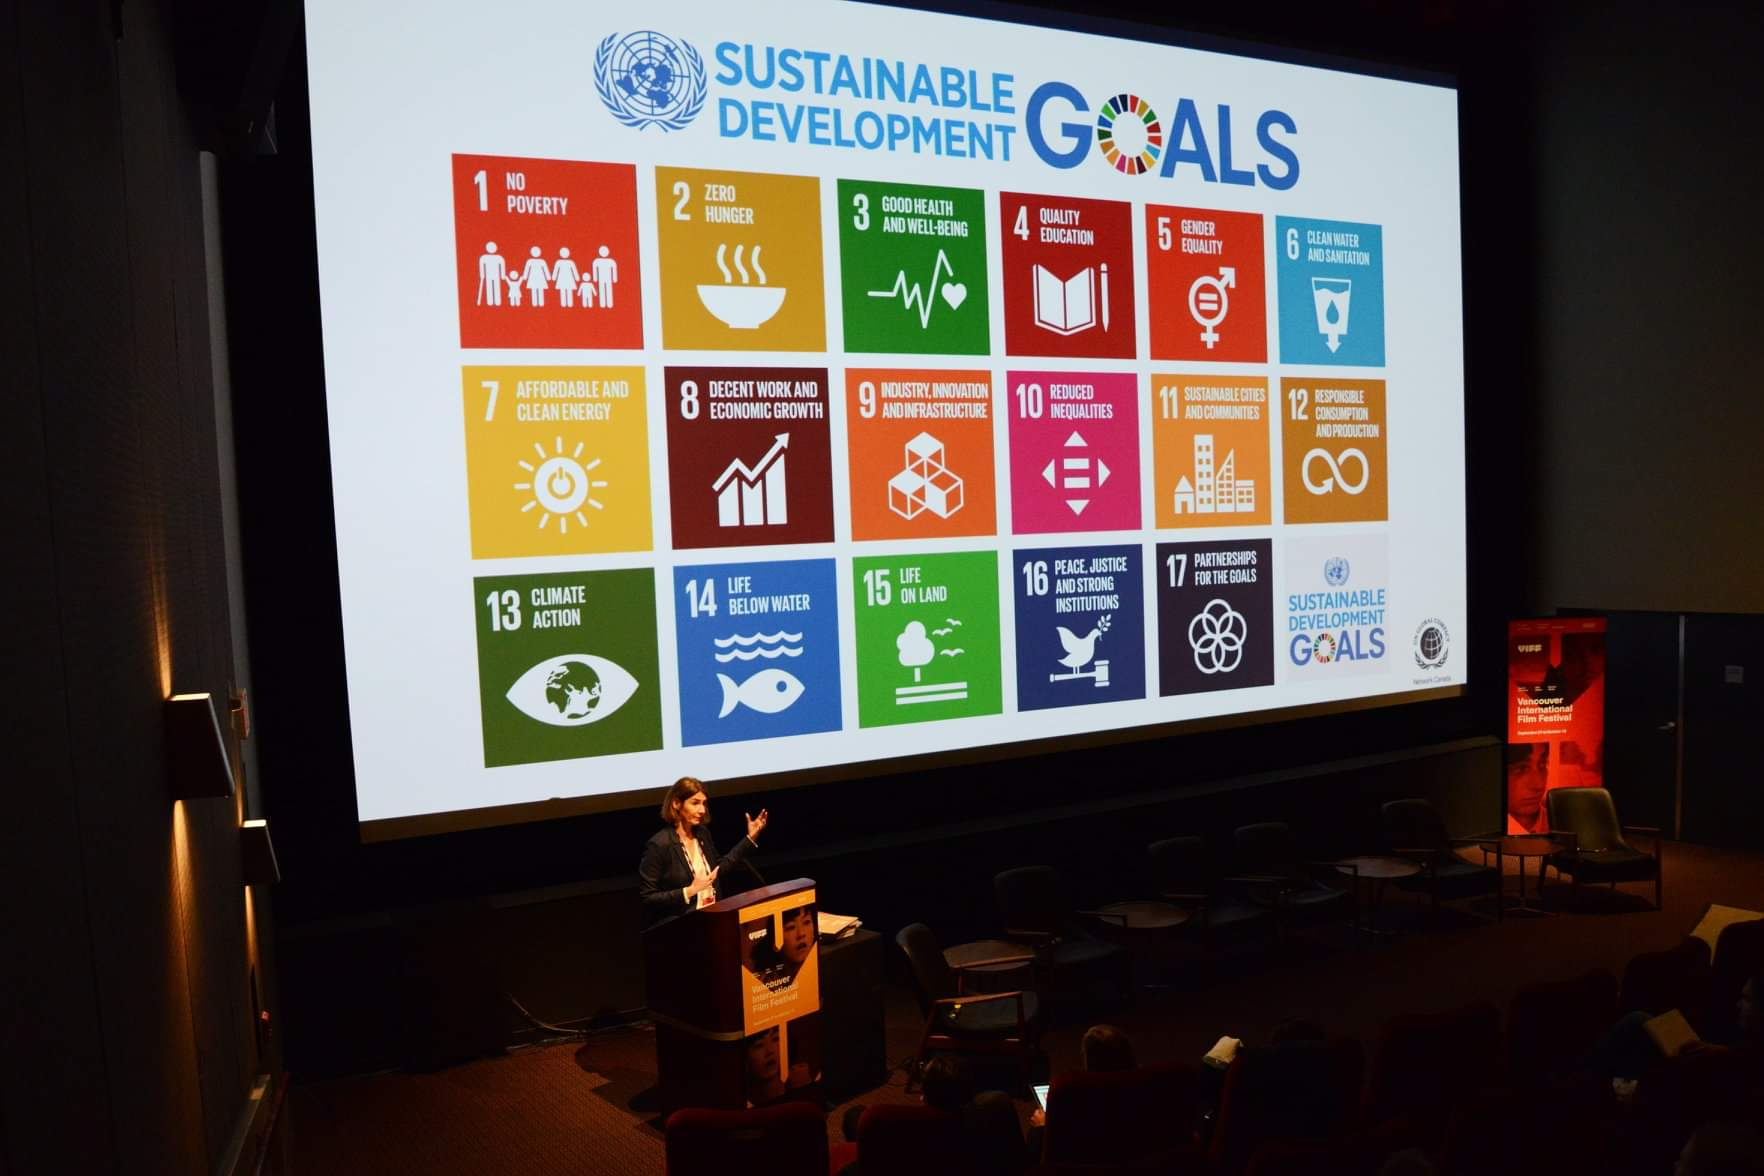 Helle Bank Jorgensen discussing how to incorporate the SDGs into our work